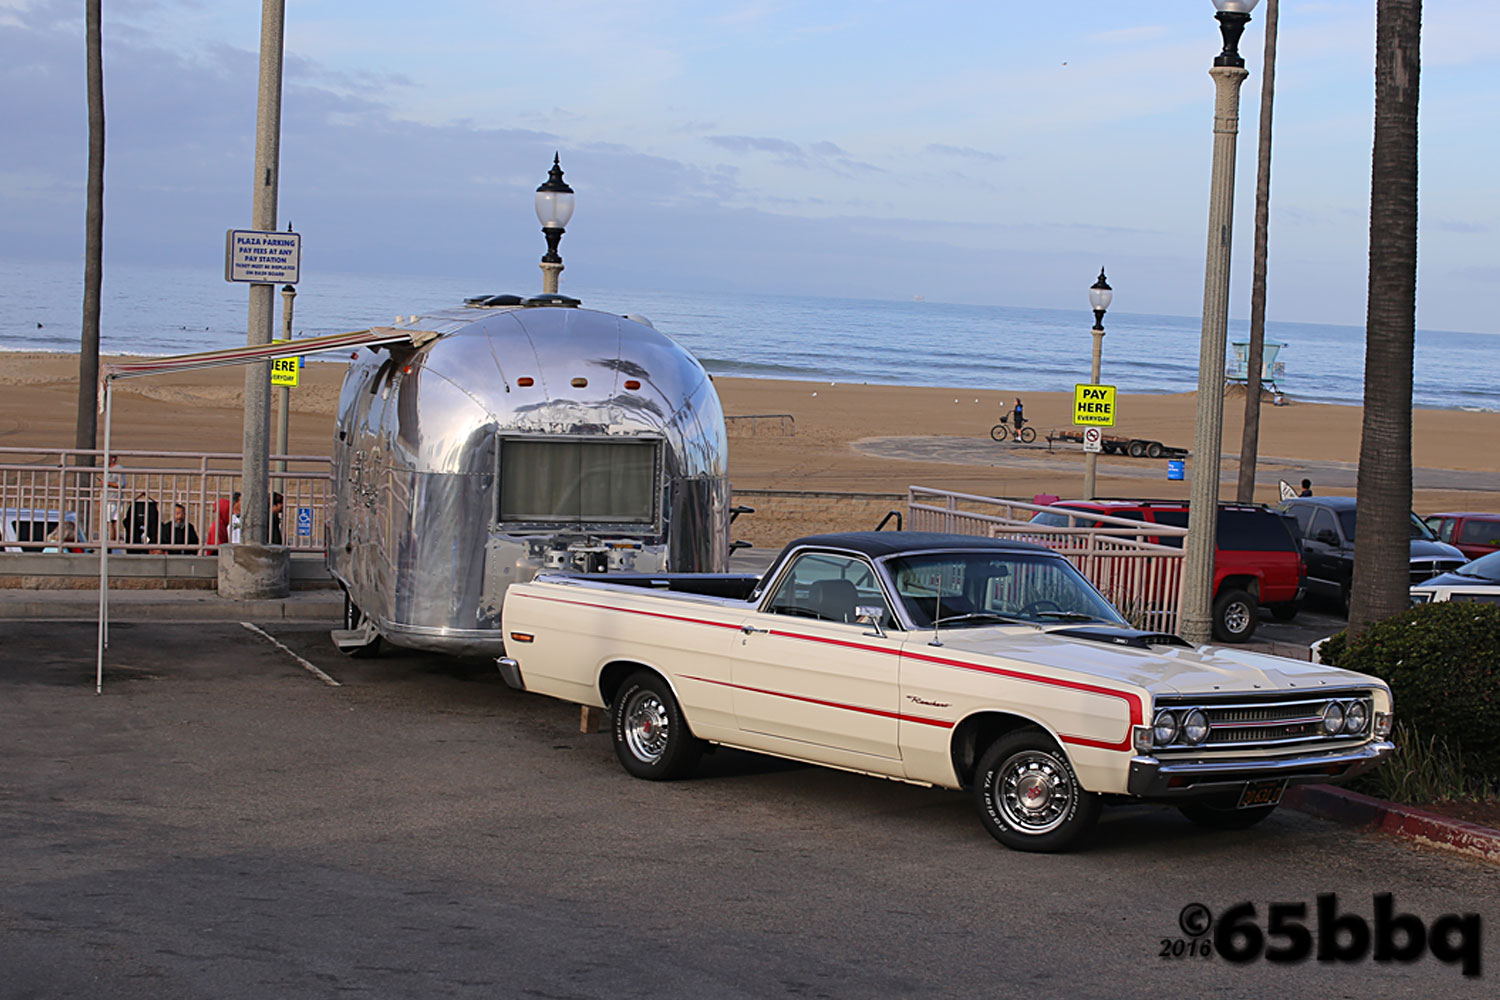 Ford Ranchero with Vintage Airstream Trailer 65bbq